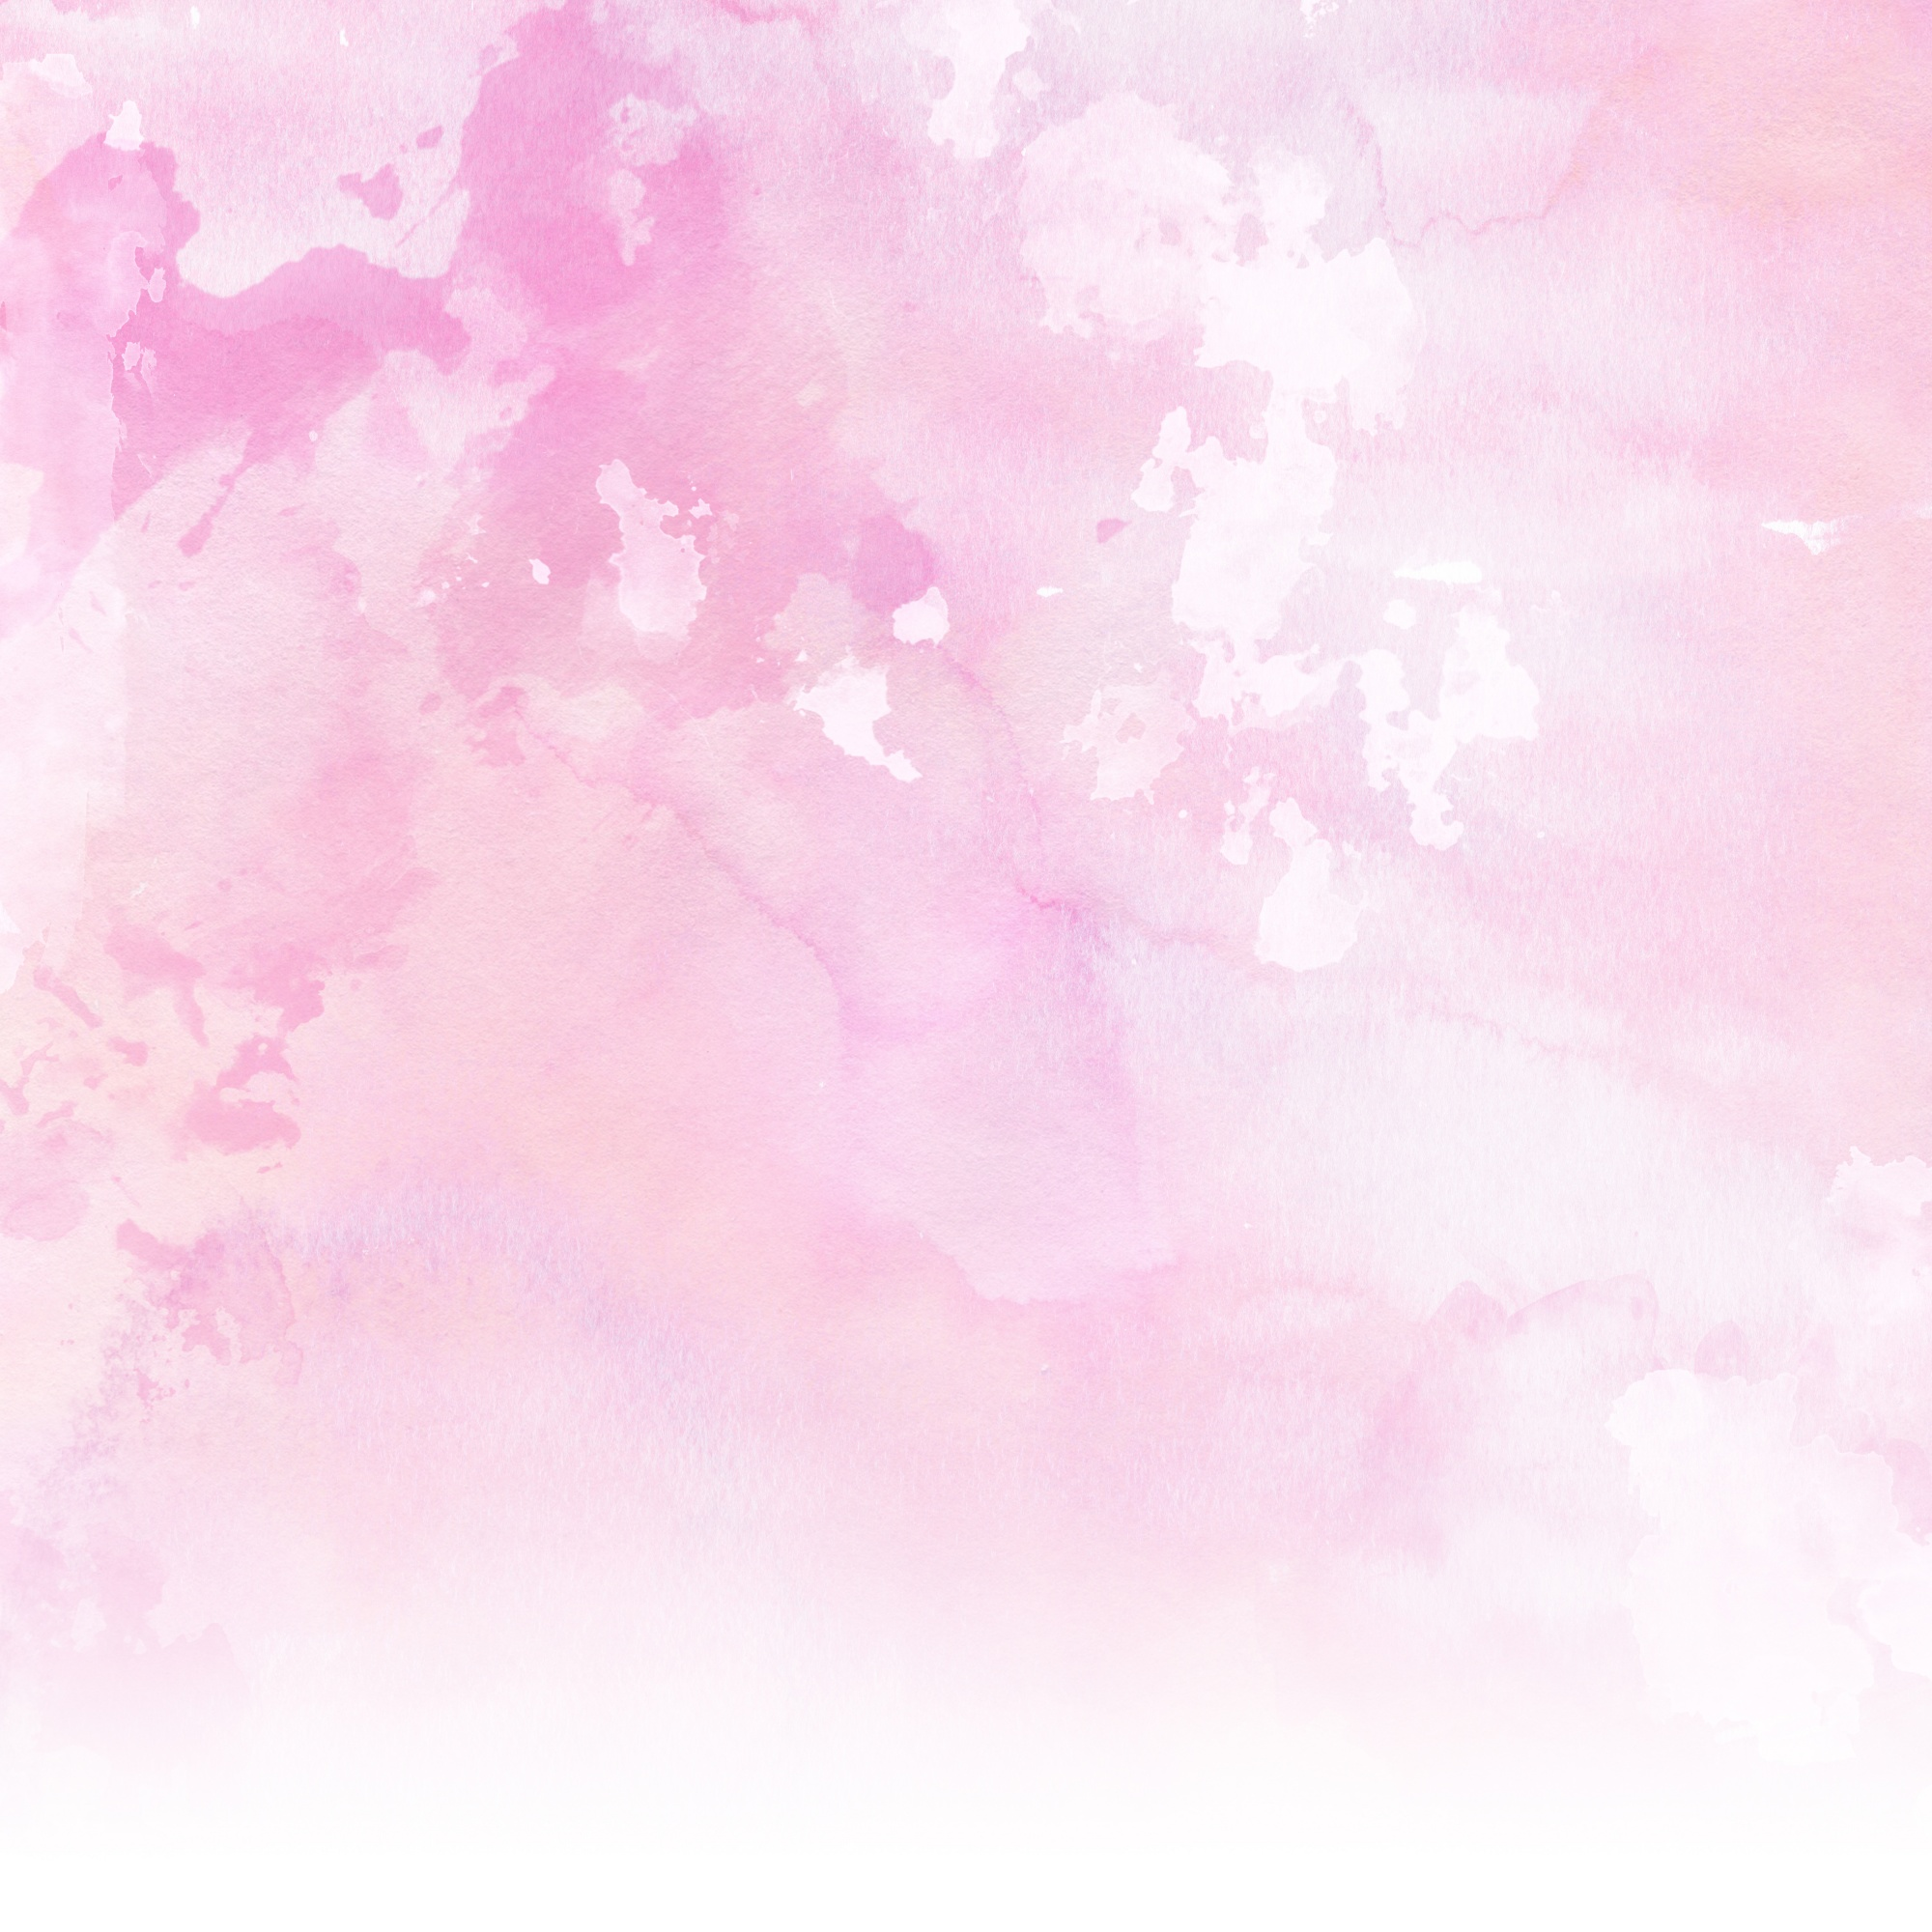 Pastel pink watercolour background